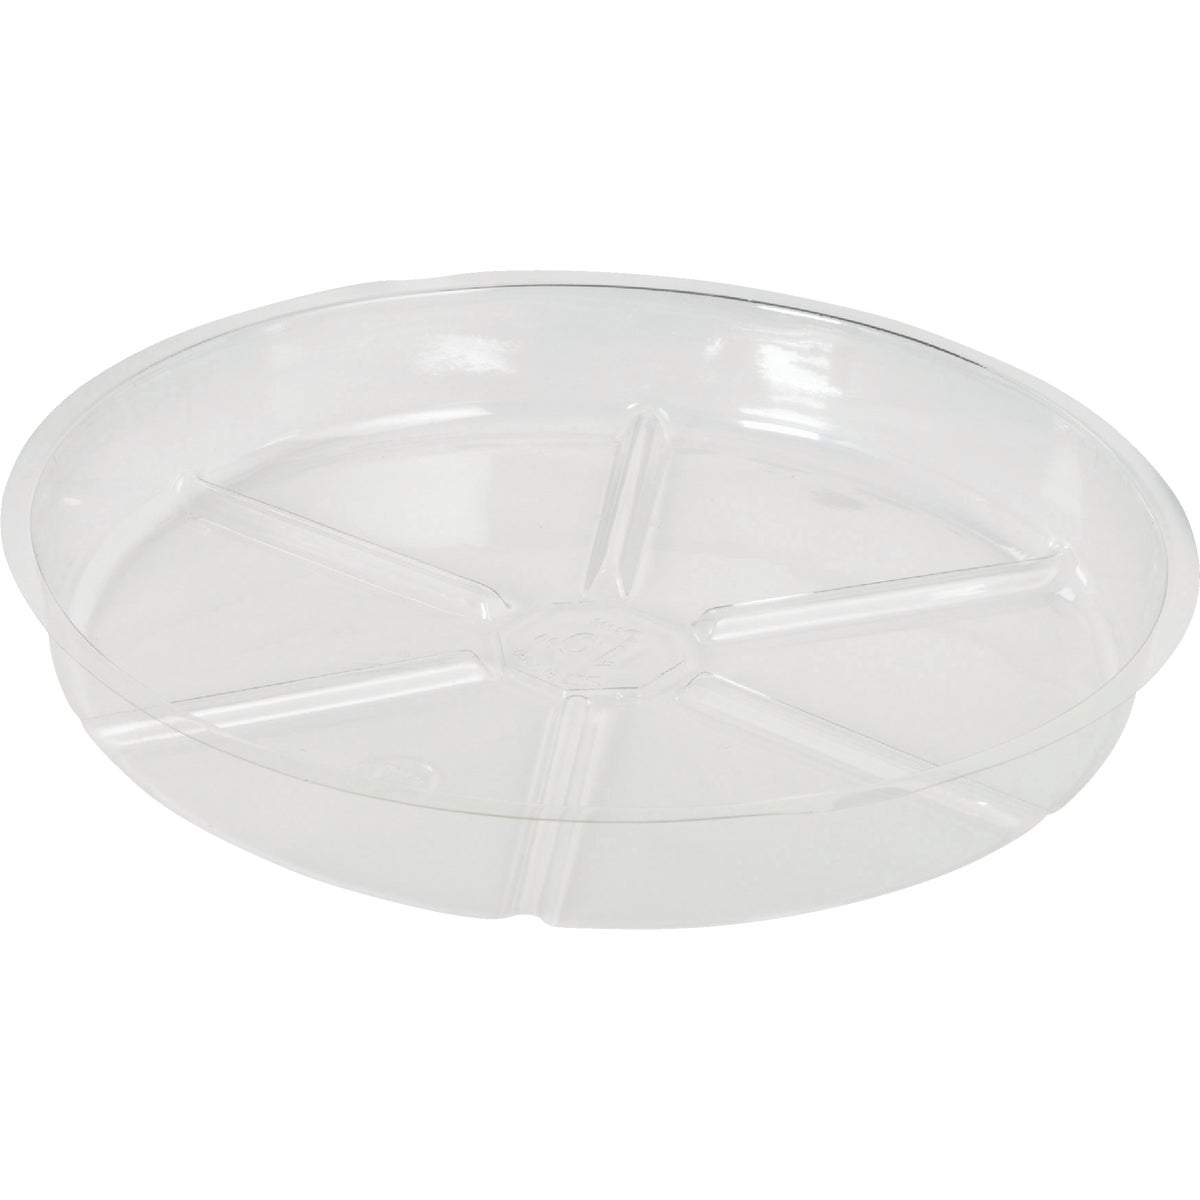 "10"" CLEAR VINYL SAUCER - VS10 by Woodstream Corp"